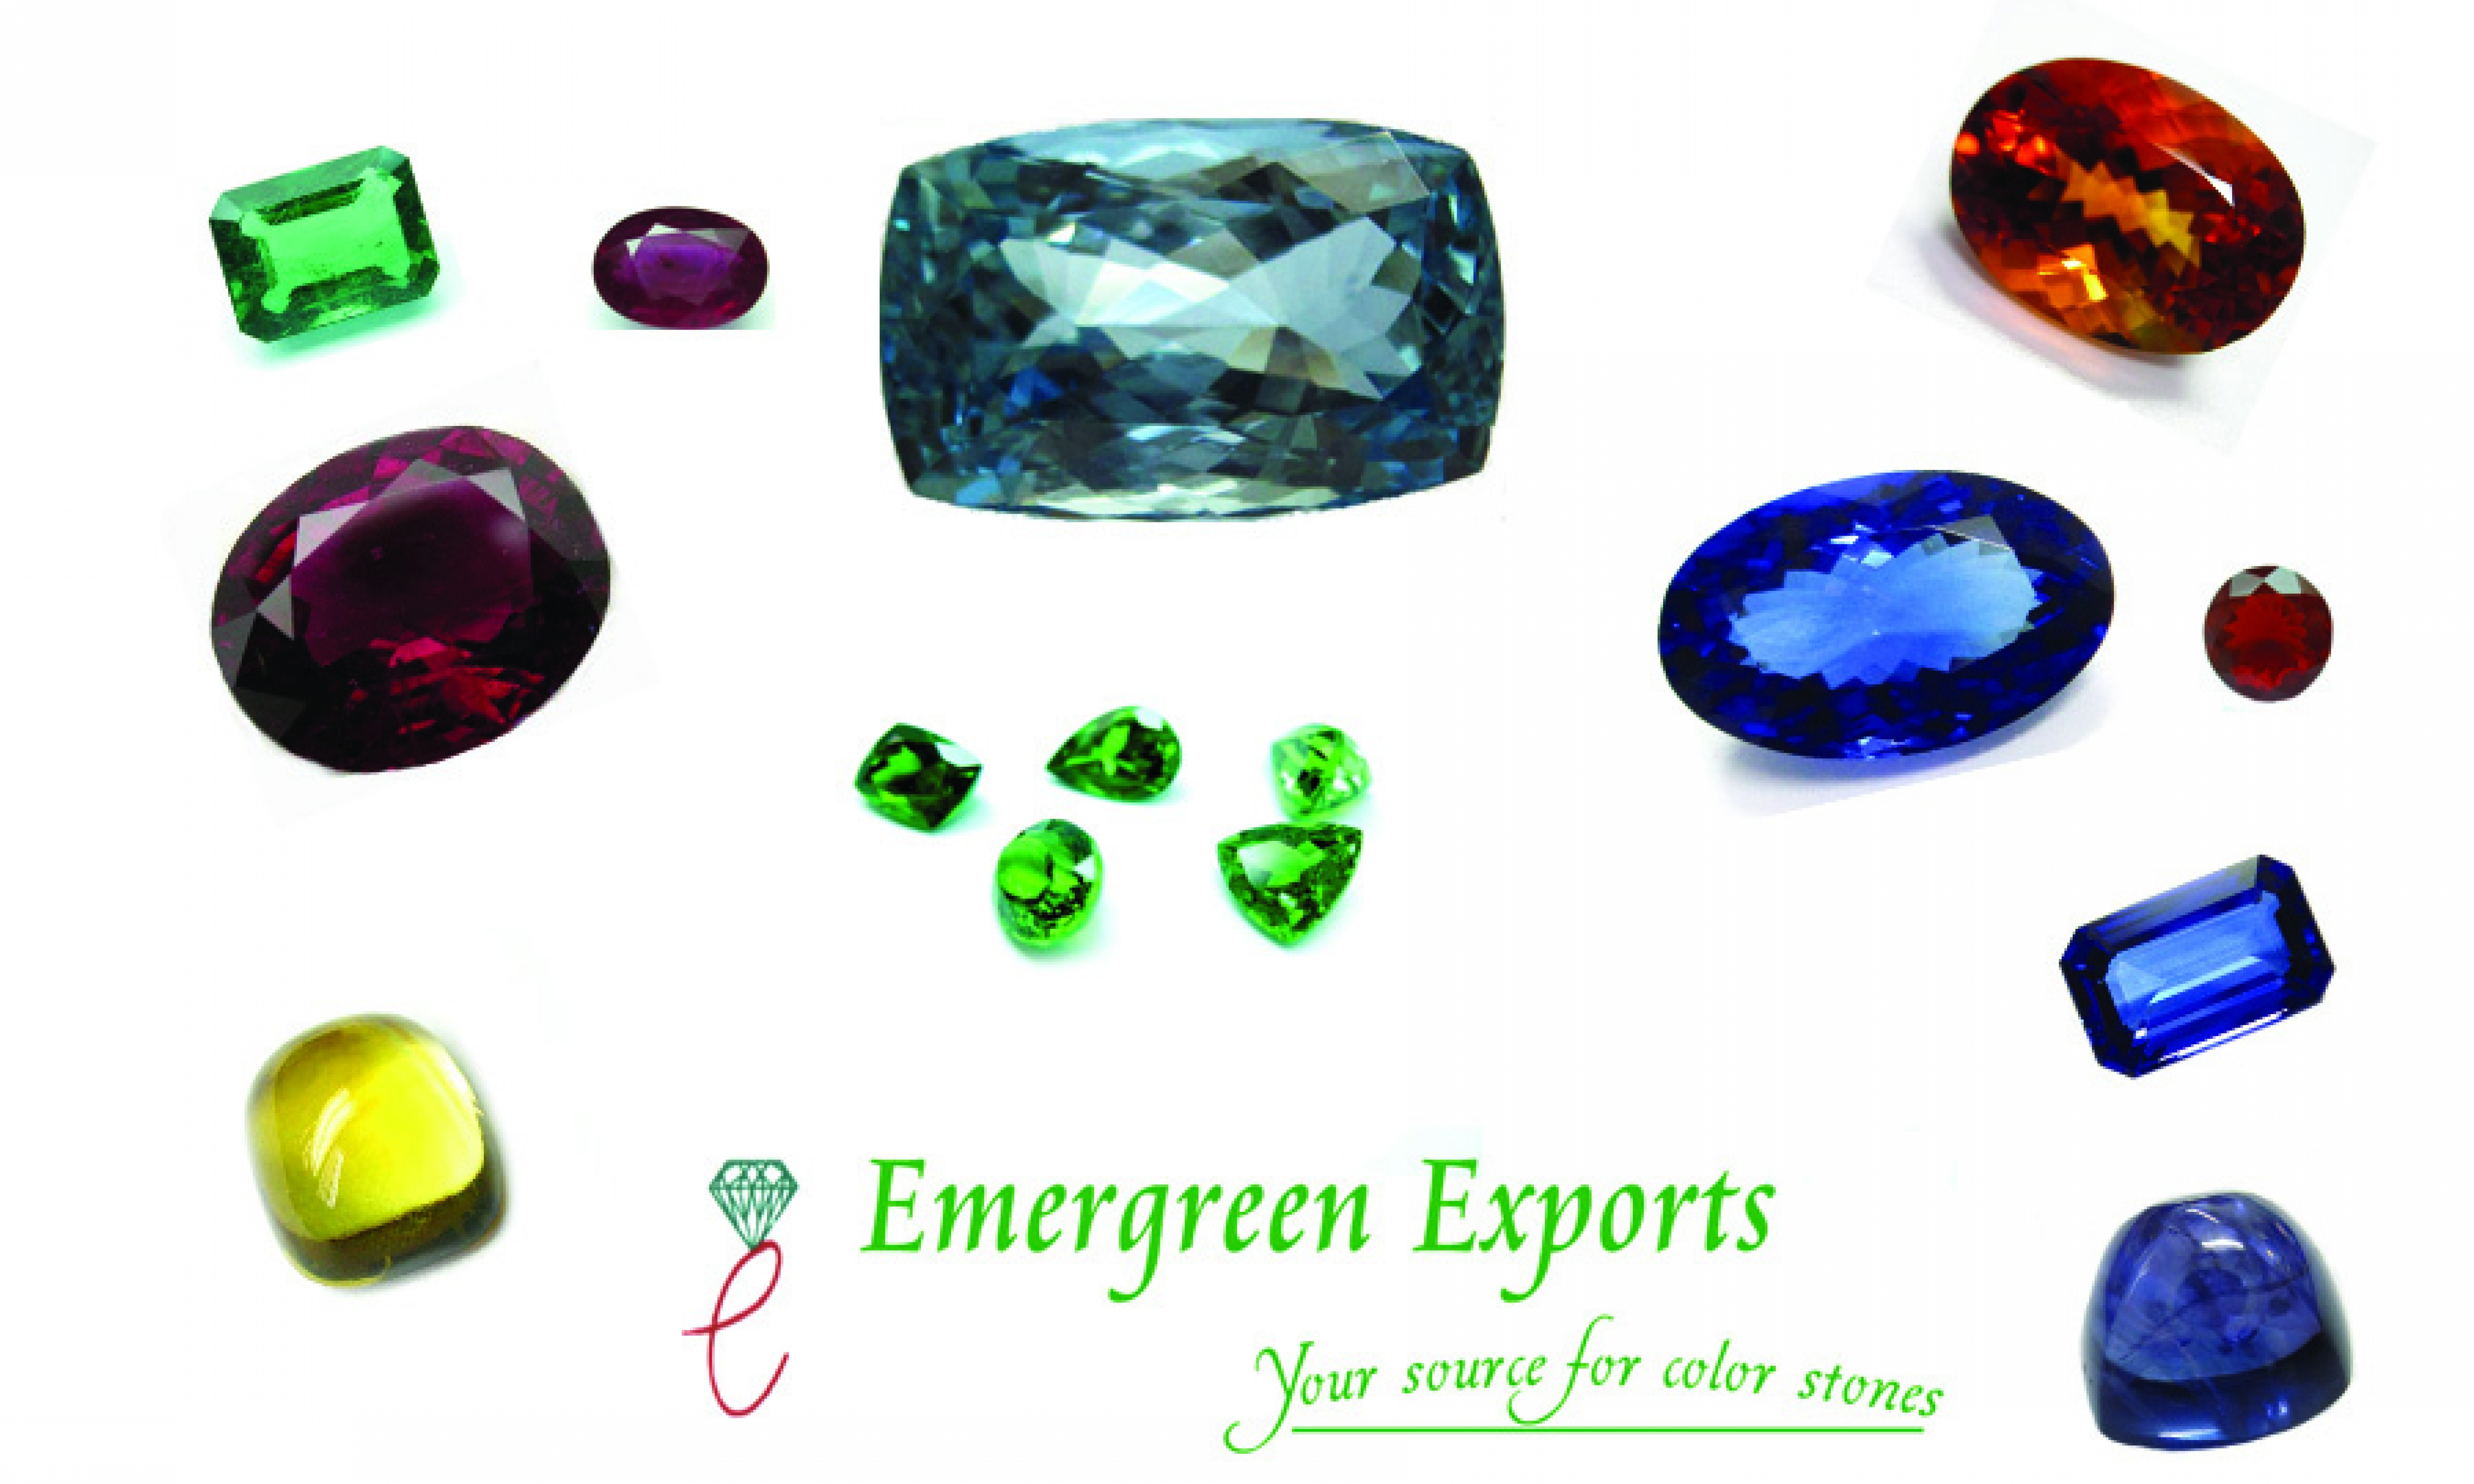 Emergreen Exports Multiple Stones in One Picture 2nd photo